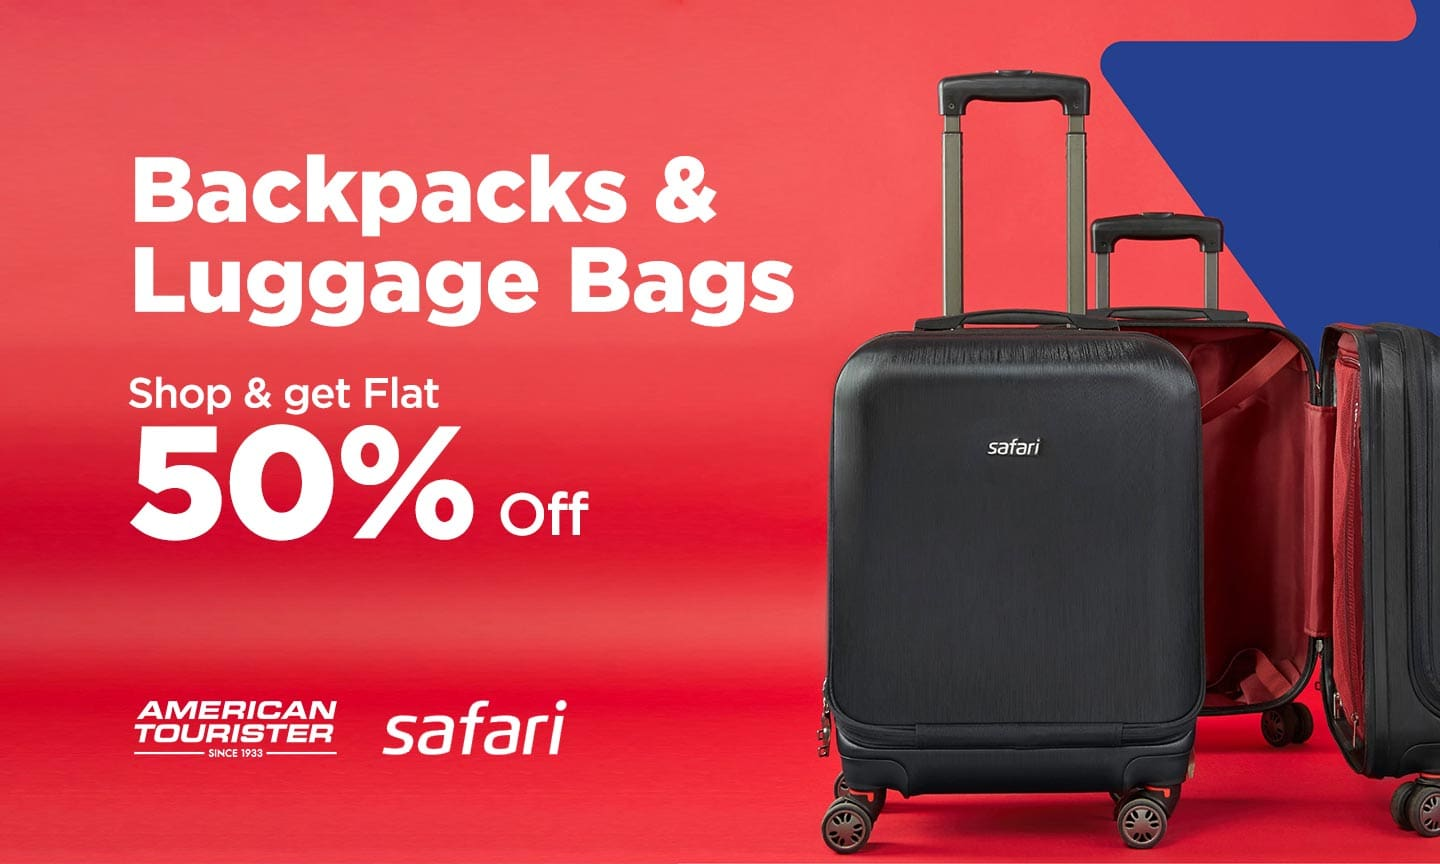 Backpack & Luggage| Flat 50% off